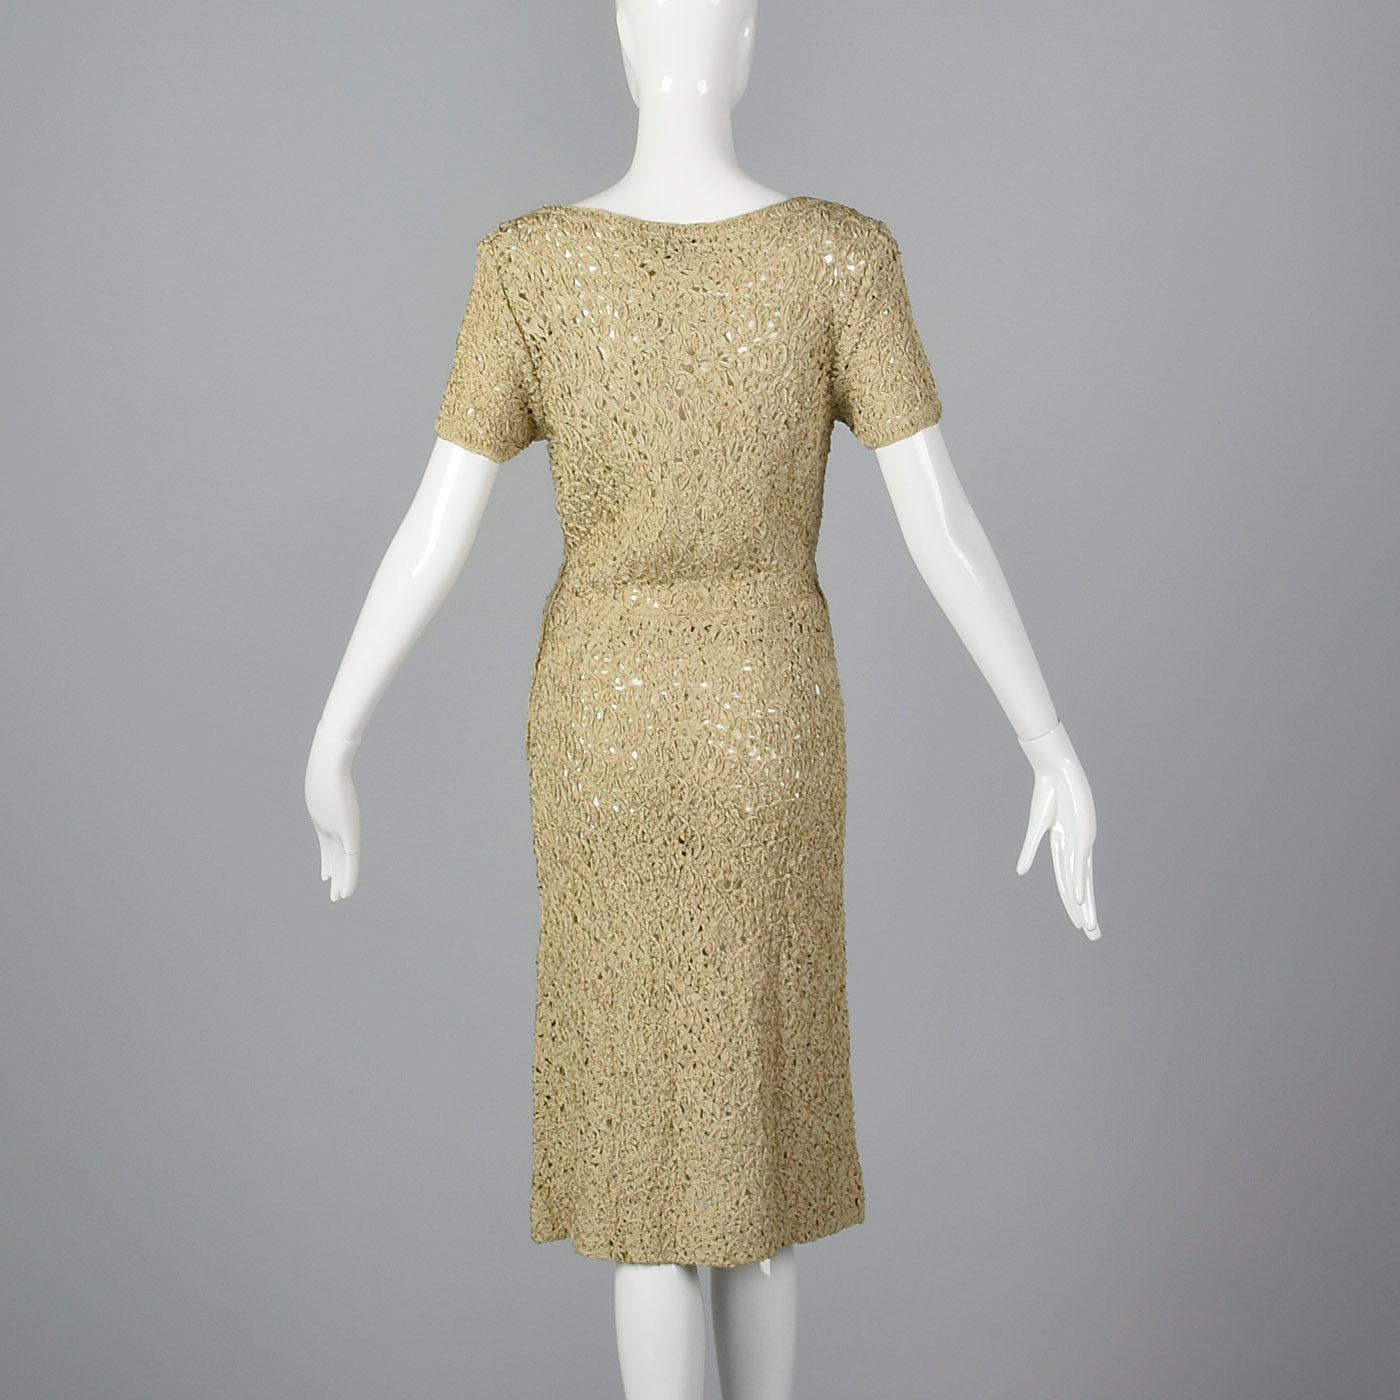 1960s Sheer Summer Ribbon Dress